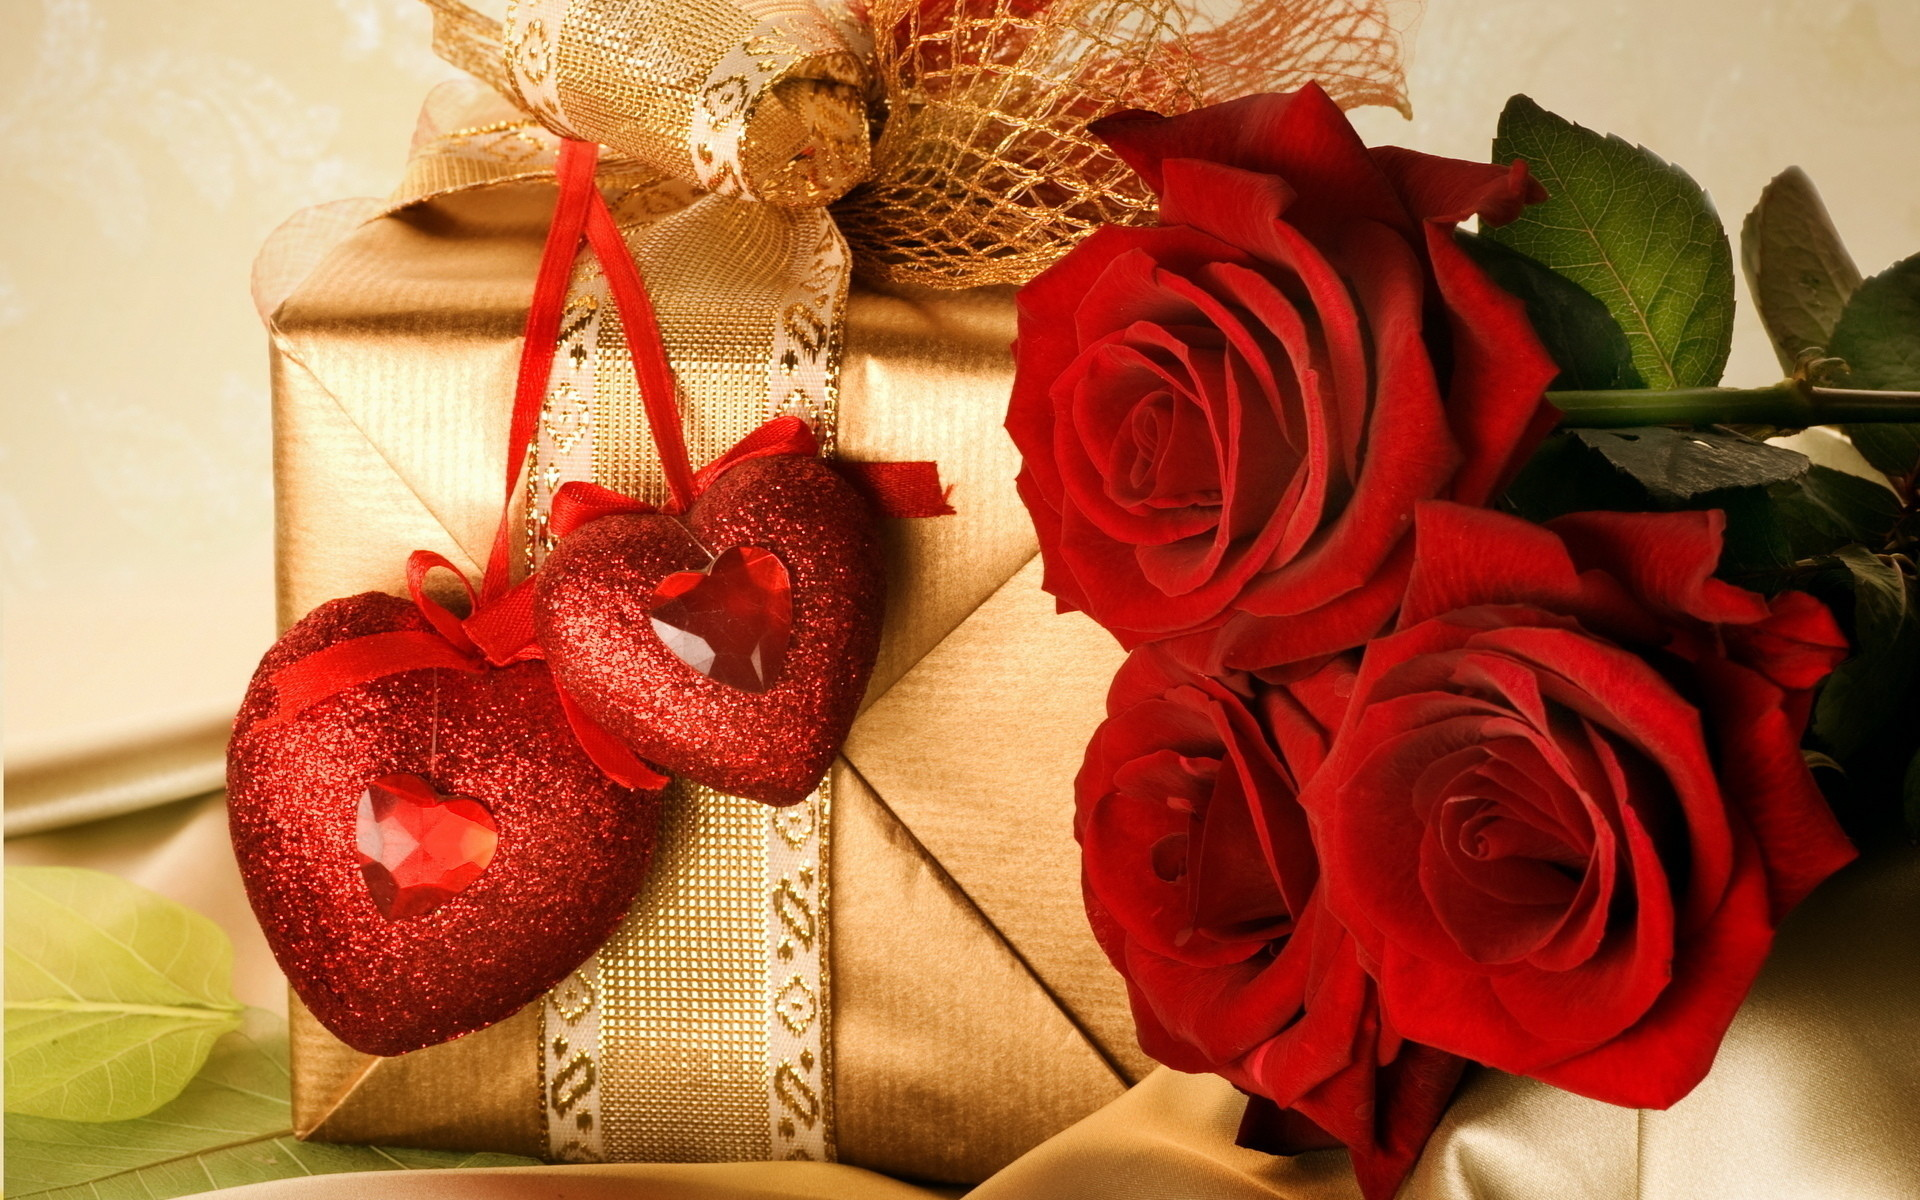 Heart Red Rose Photo Valentine's Day Wallpaper Background